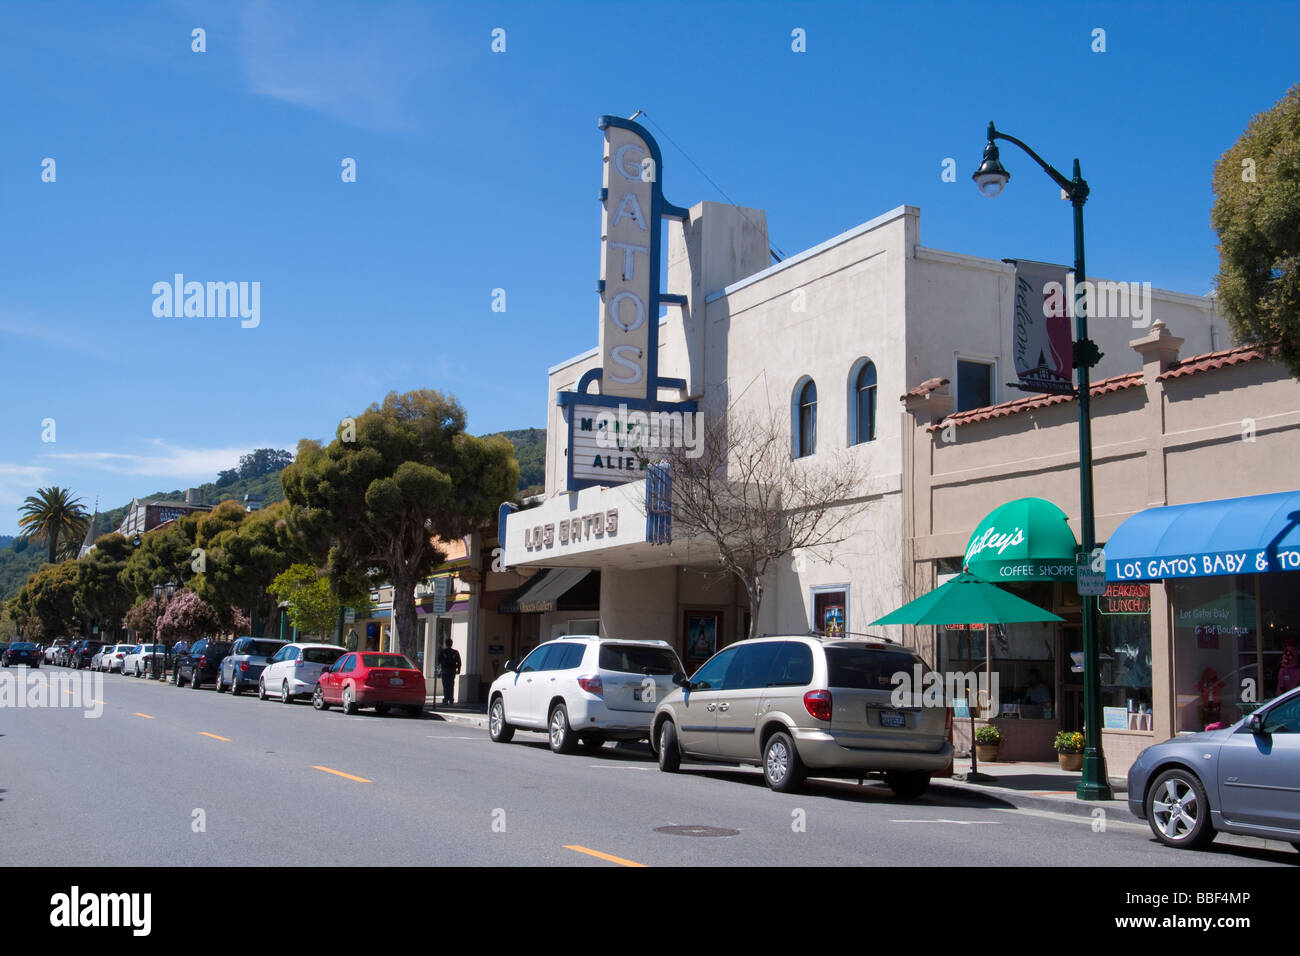 Street scene on main street of downtown Los Gatos California with old fashioned theater architecture - Stock Image